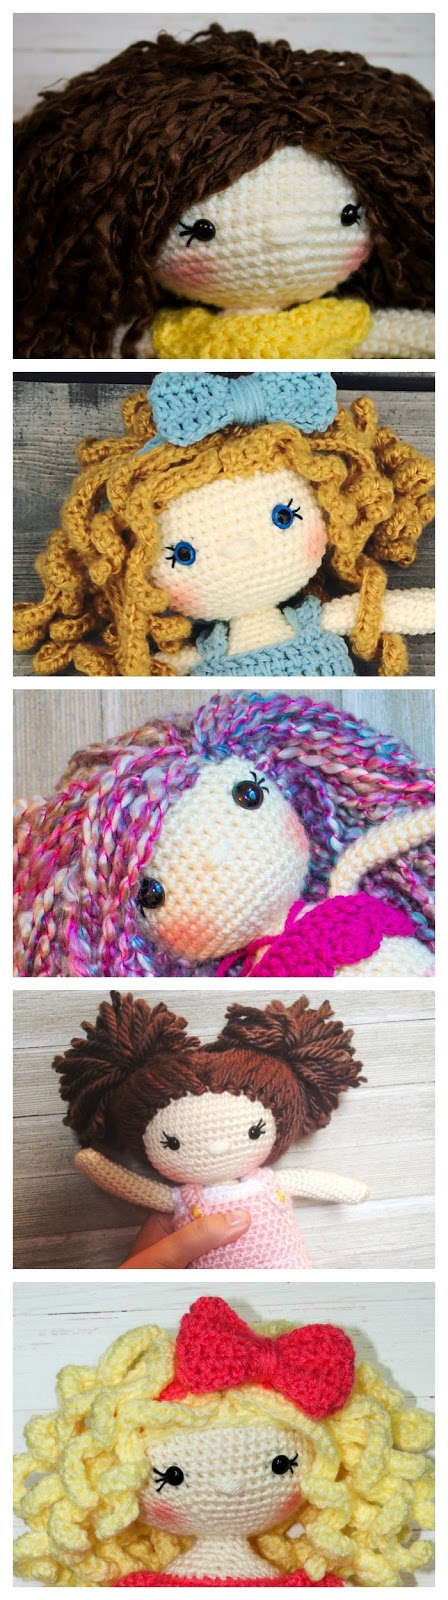 How to Crochet Curly Doll Hair - YouTube | 1600x448